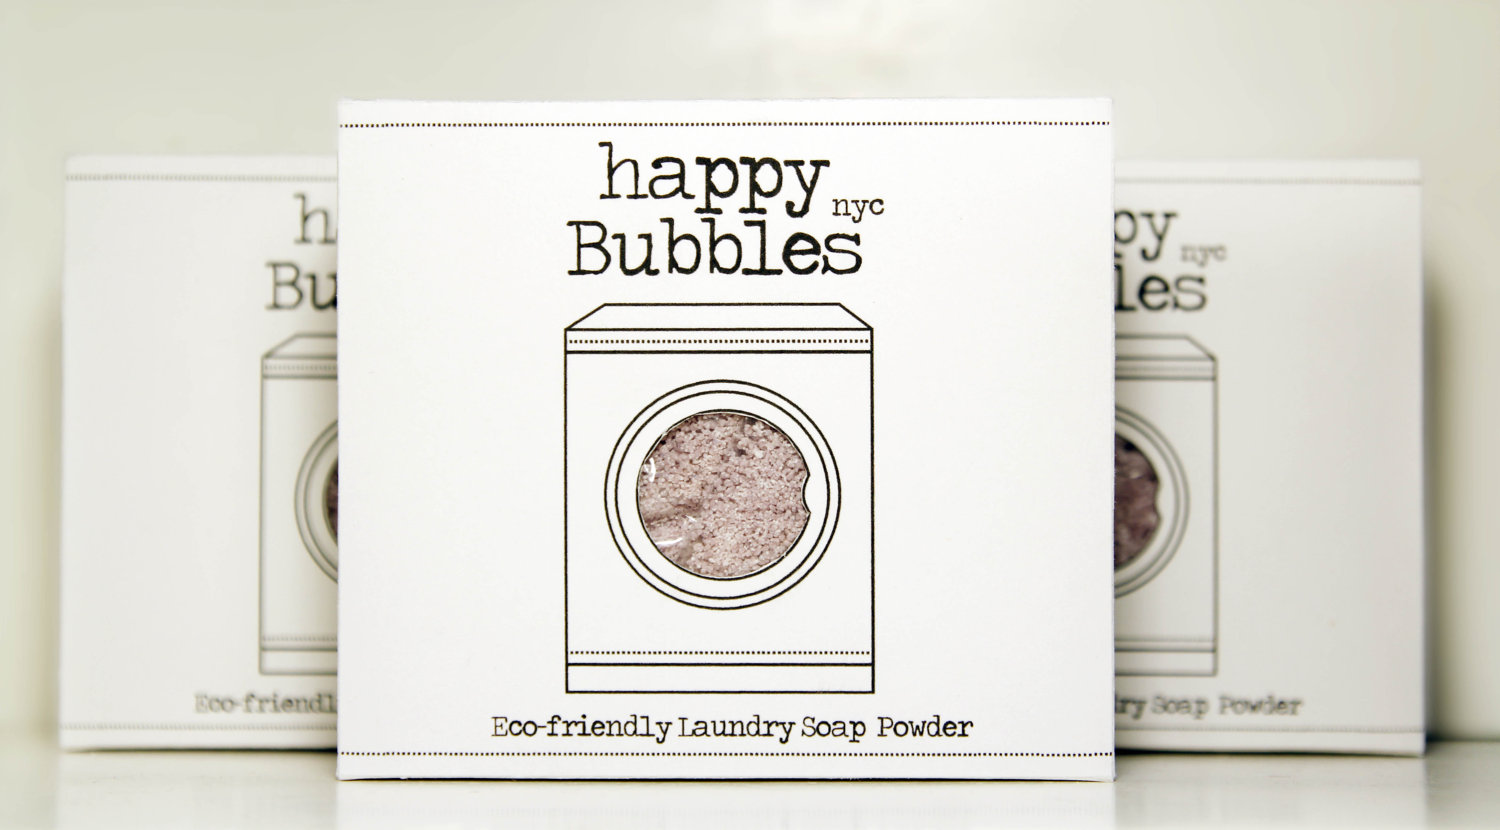 Eco friendly laundry soap